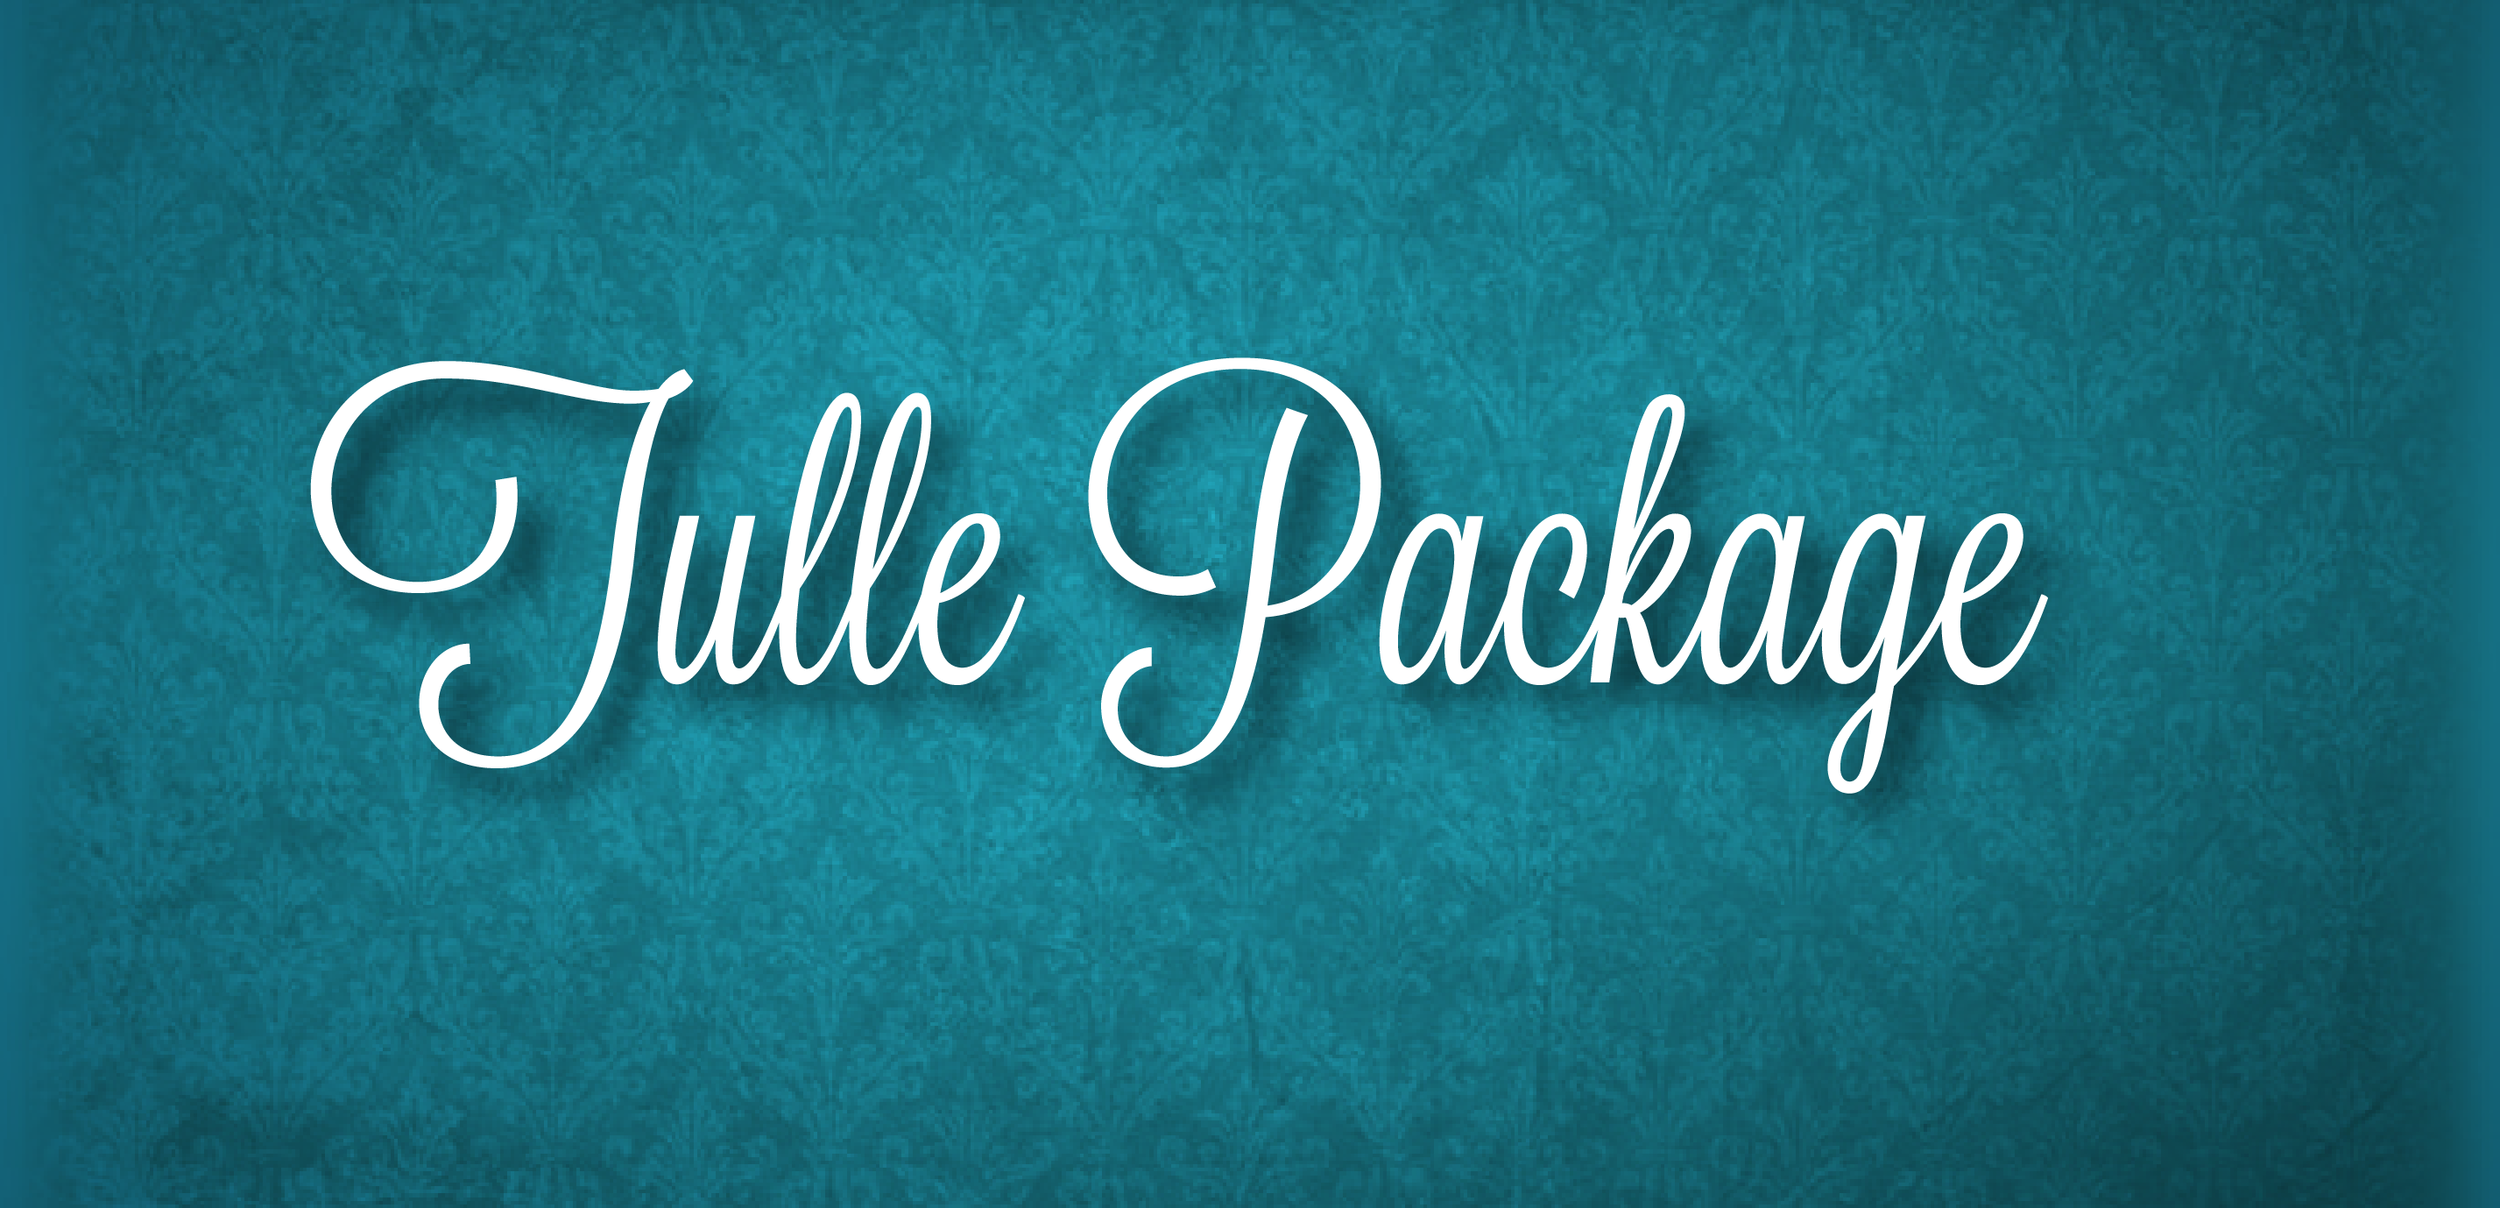 Tulle Package.png